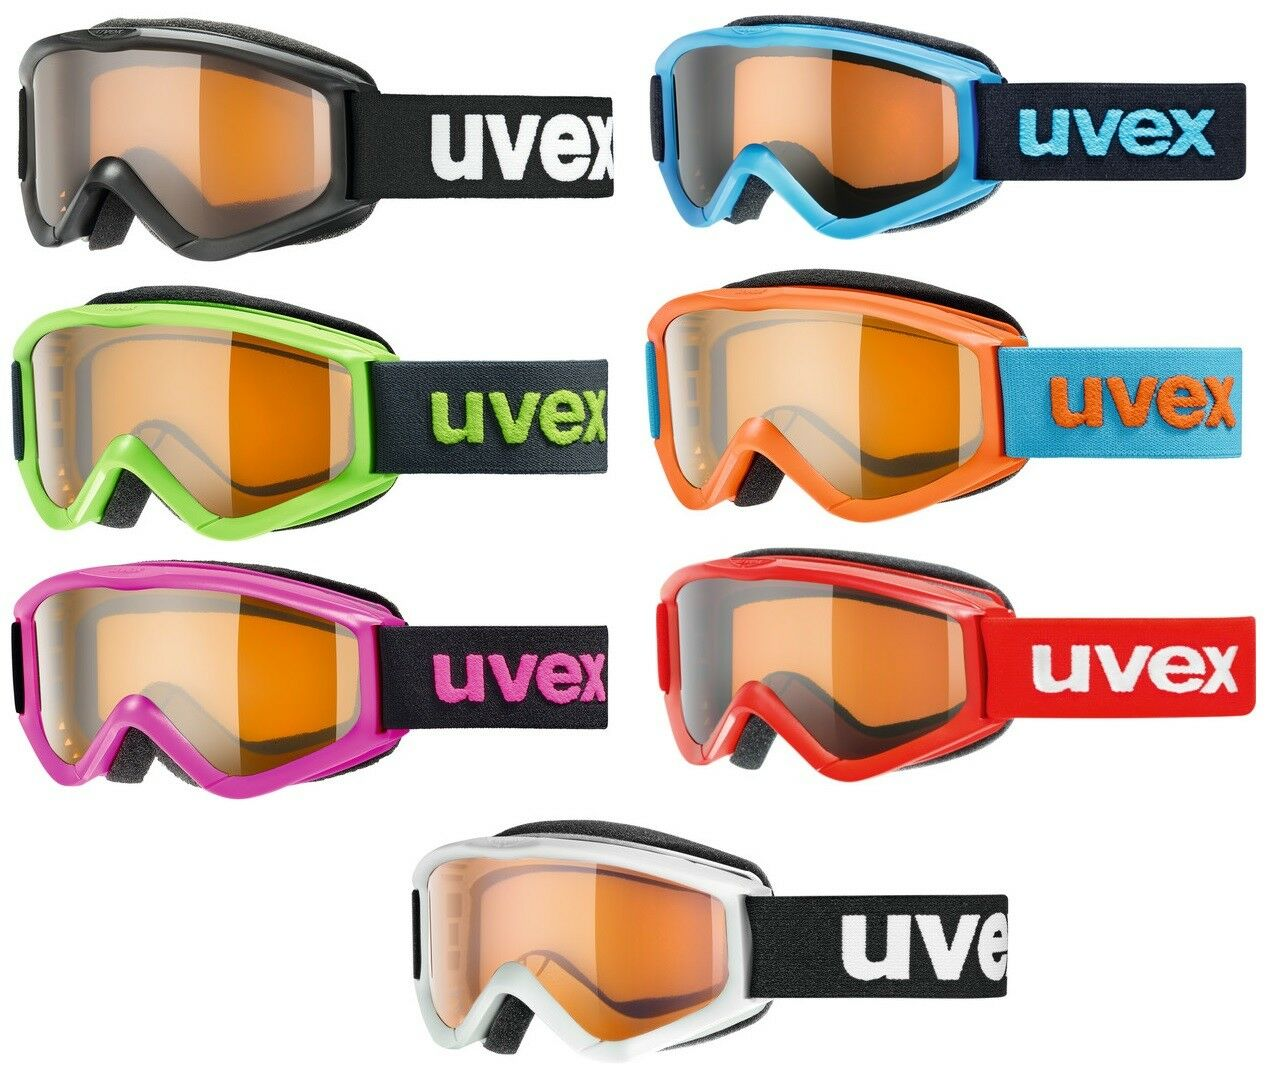 UVEX SPEEDY PRO Kinder Skibrille Snowboardbrille Collection 2019 - NEU !!!